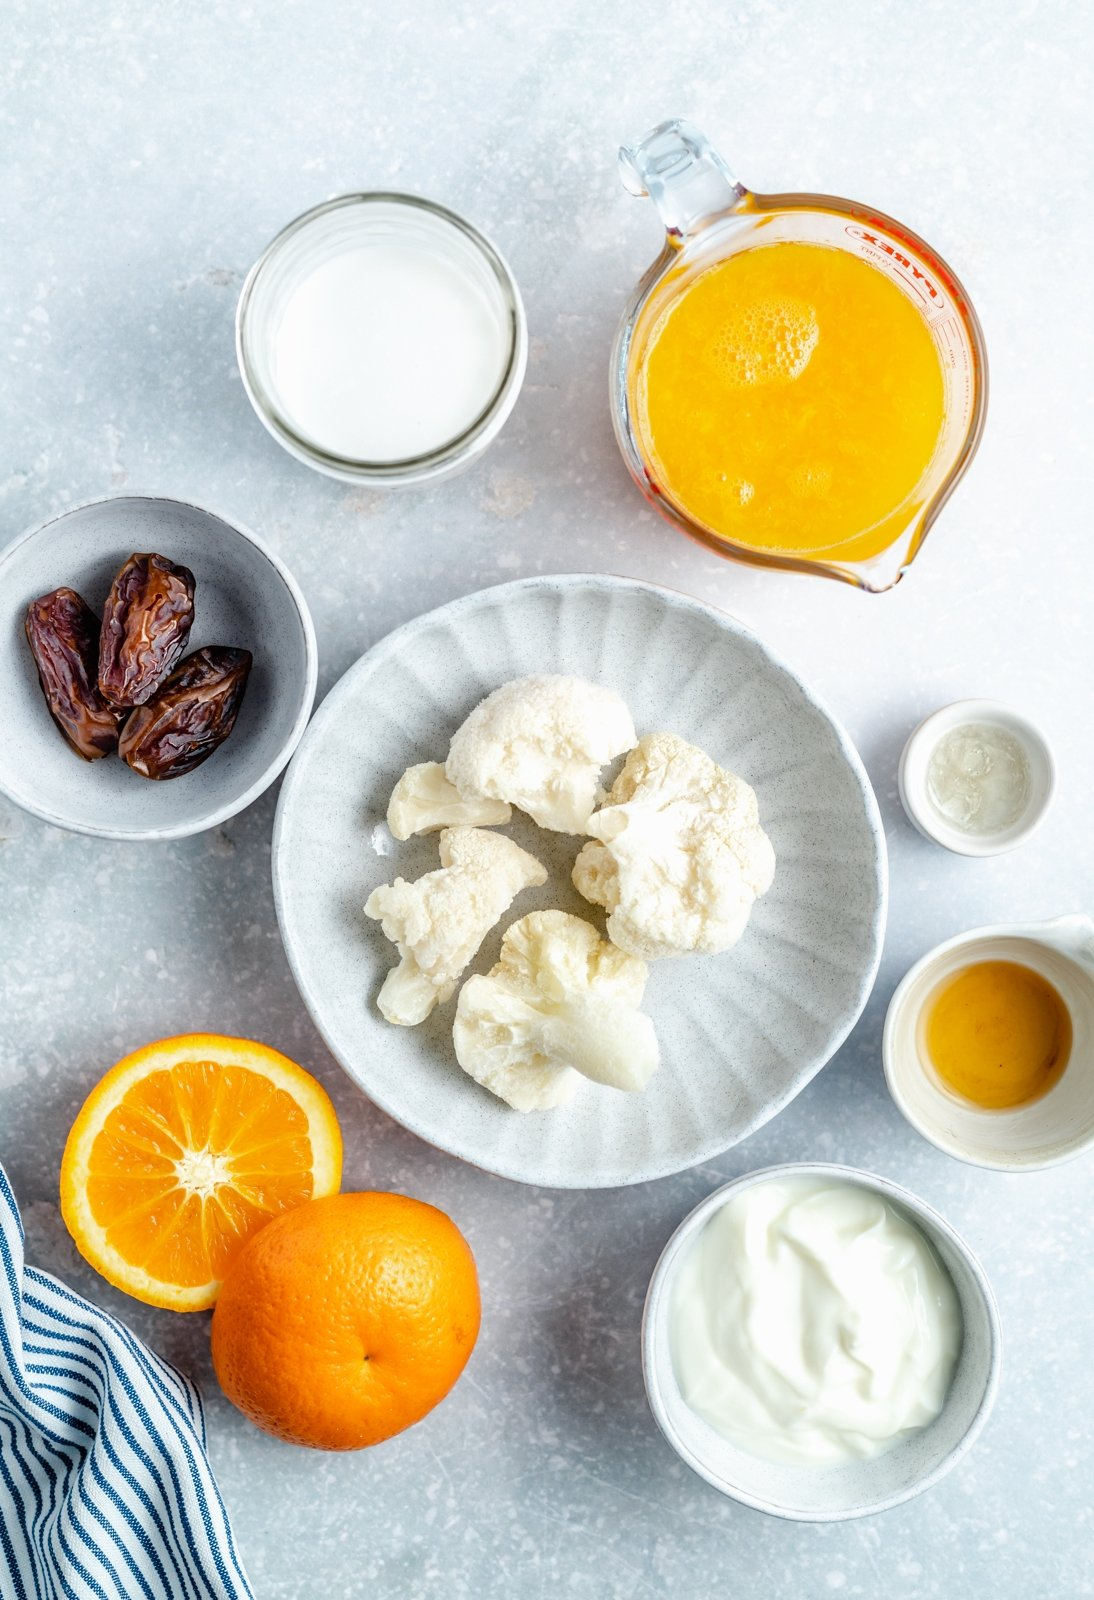 ingredients for an orange smoothie in bowls